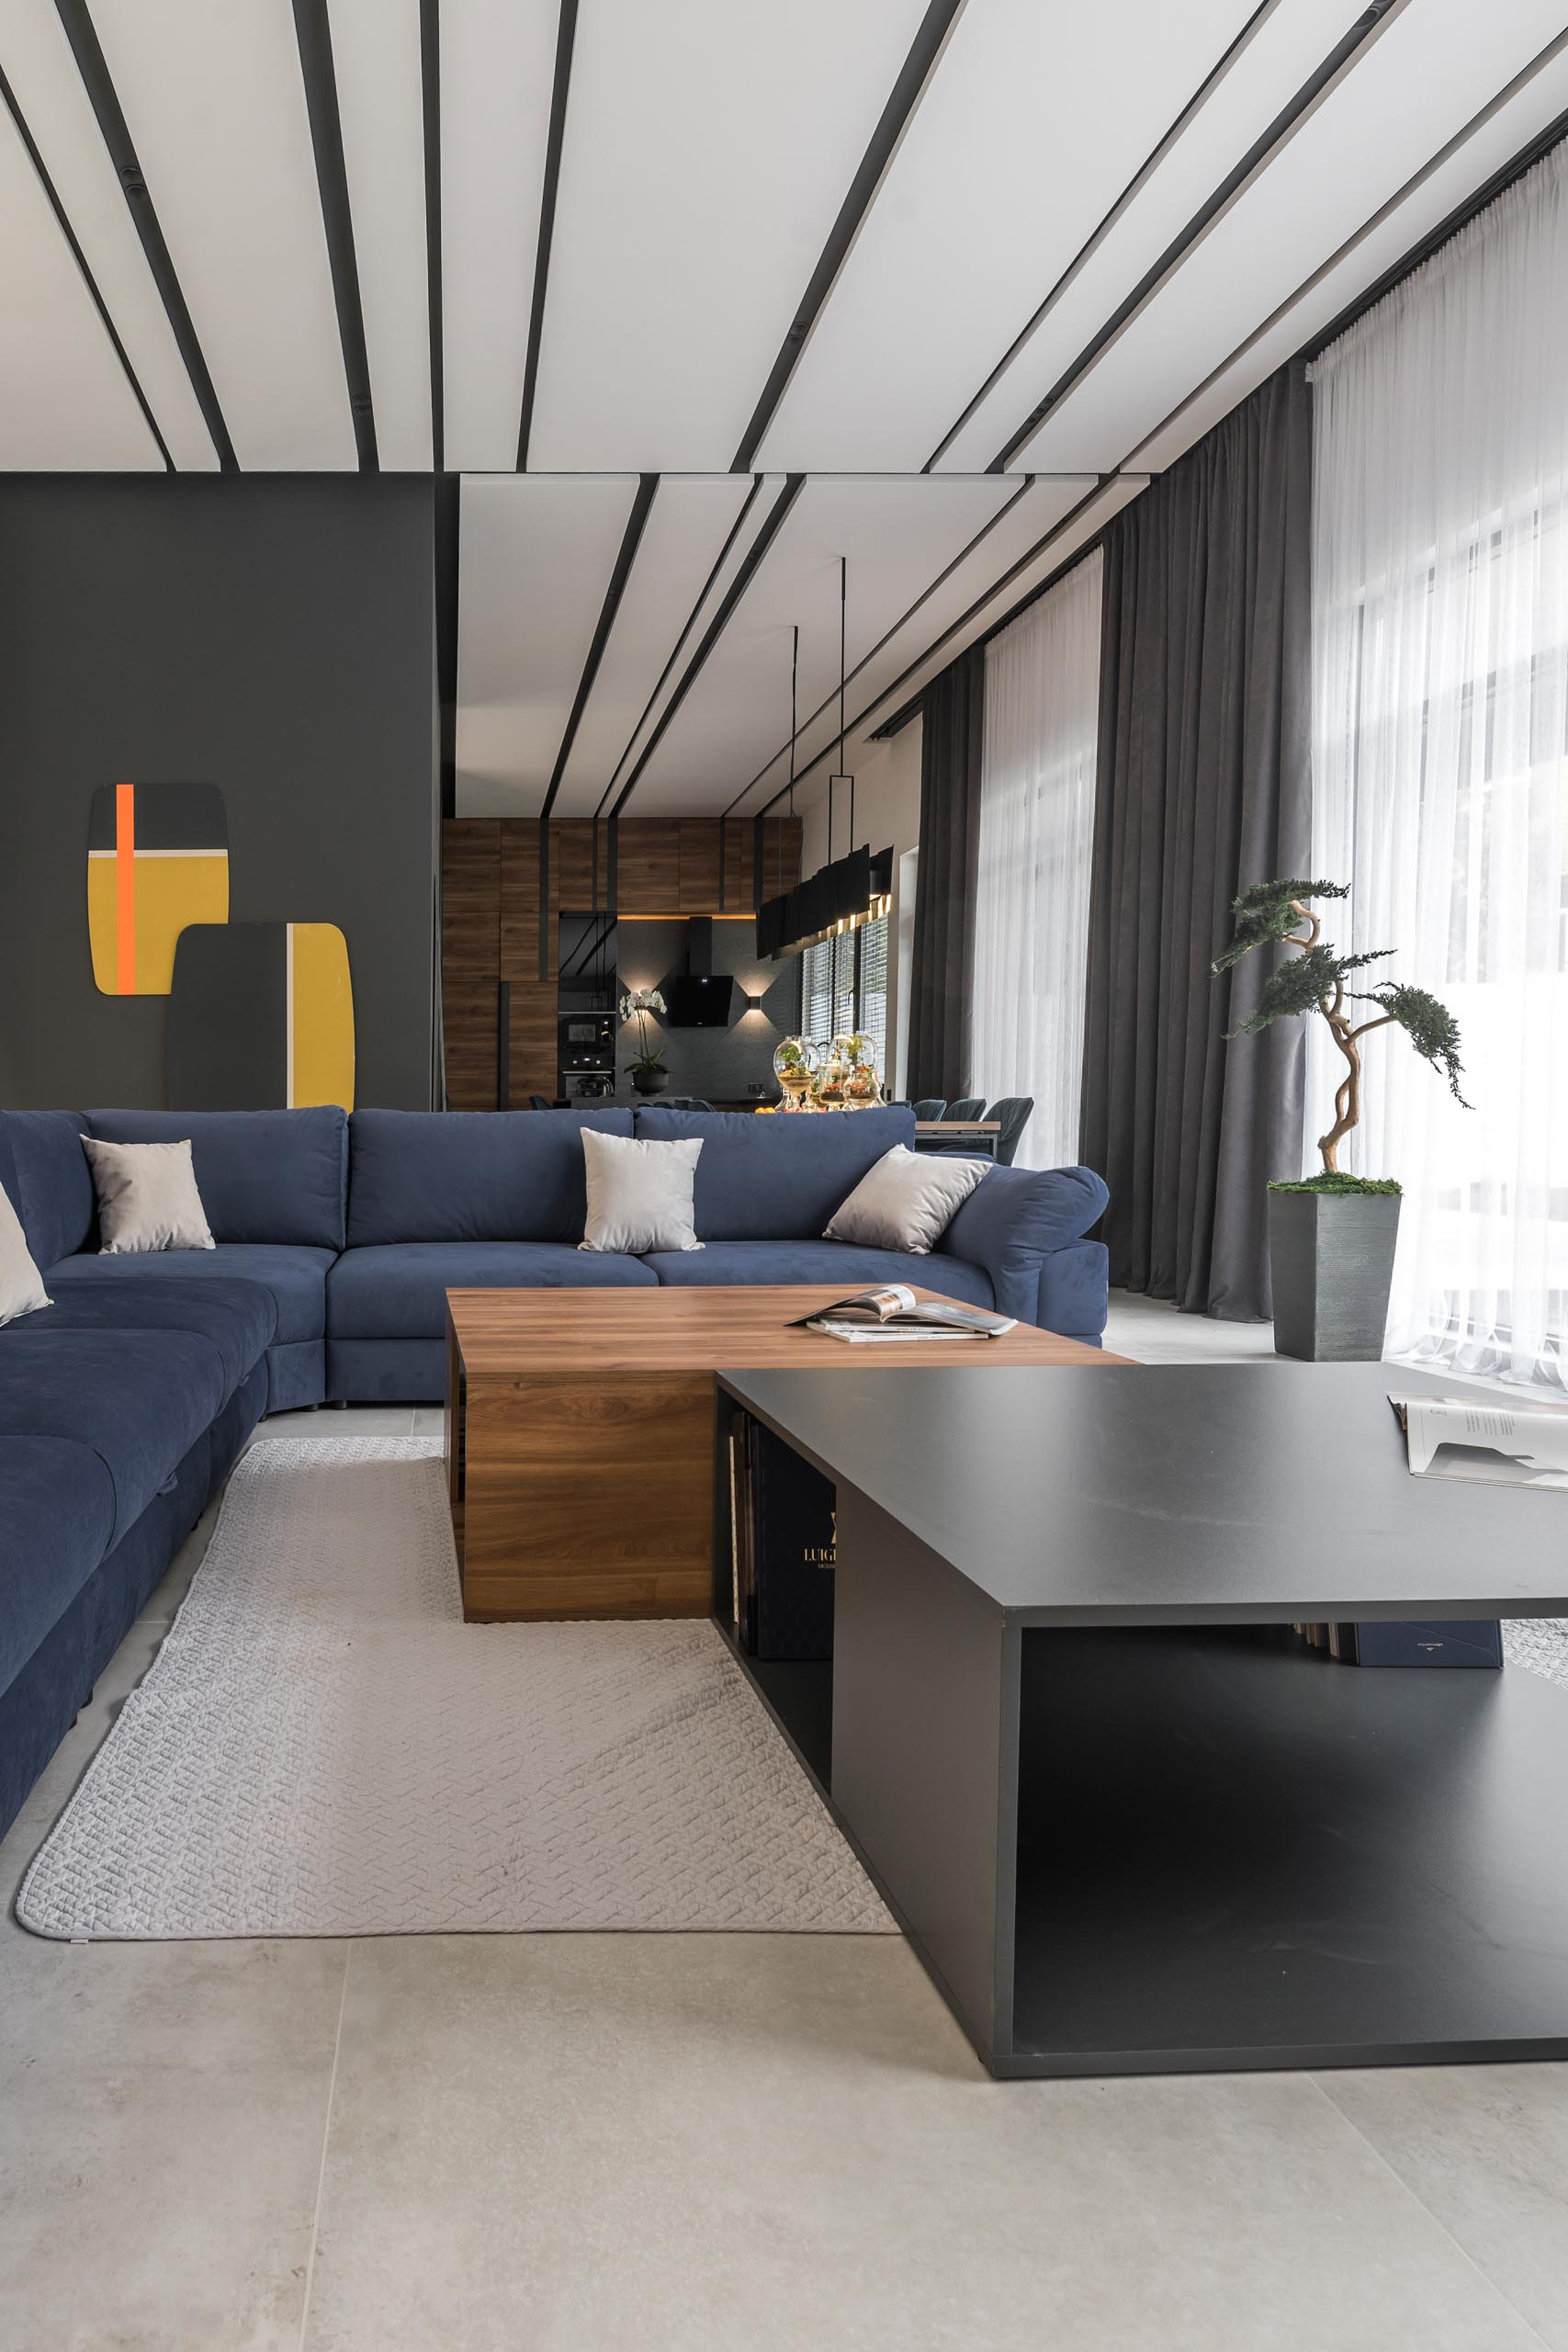 A modern living room with a large blue sofa, and a wood and gray coffee table.